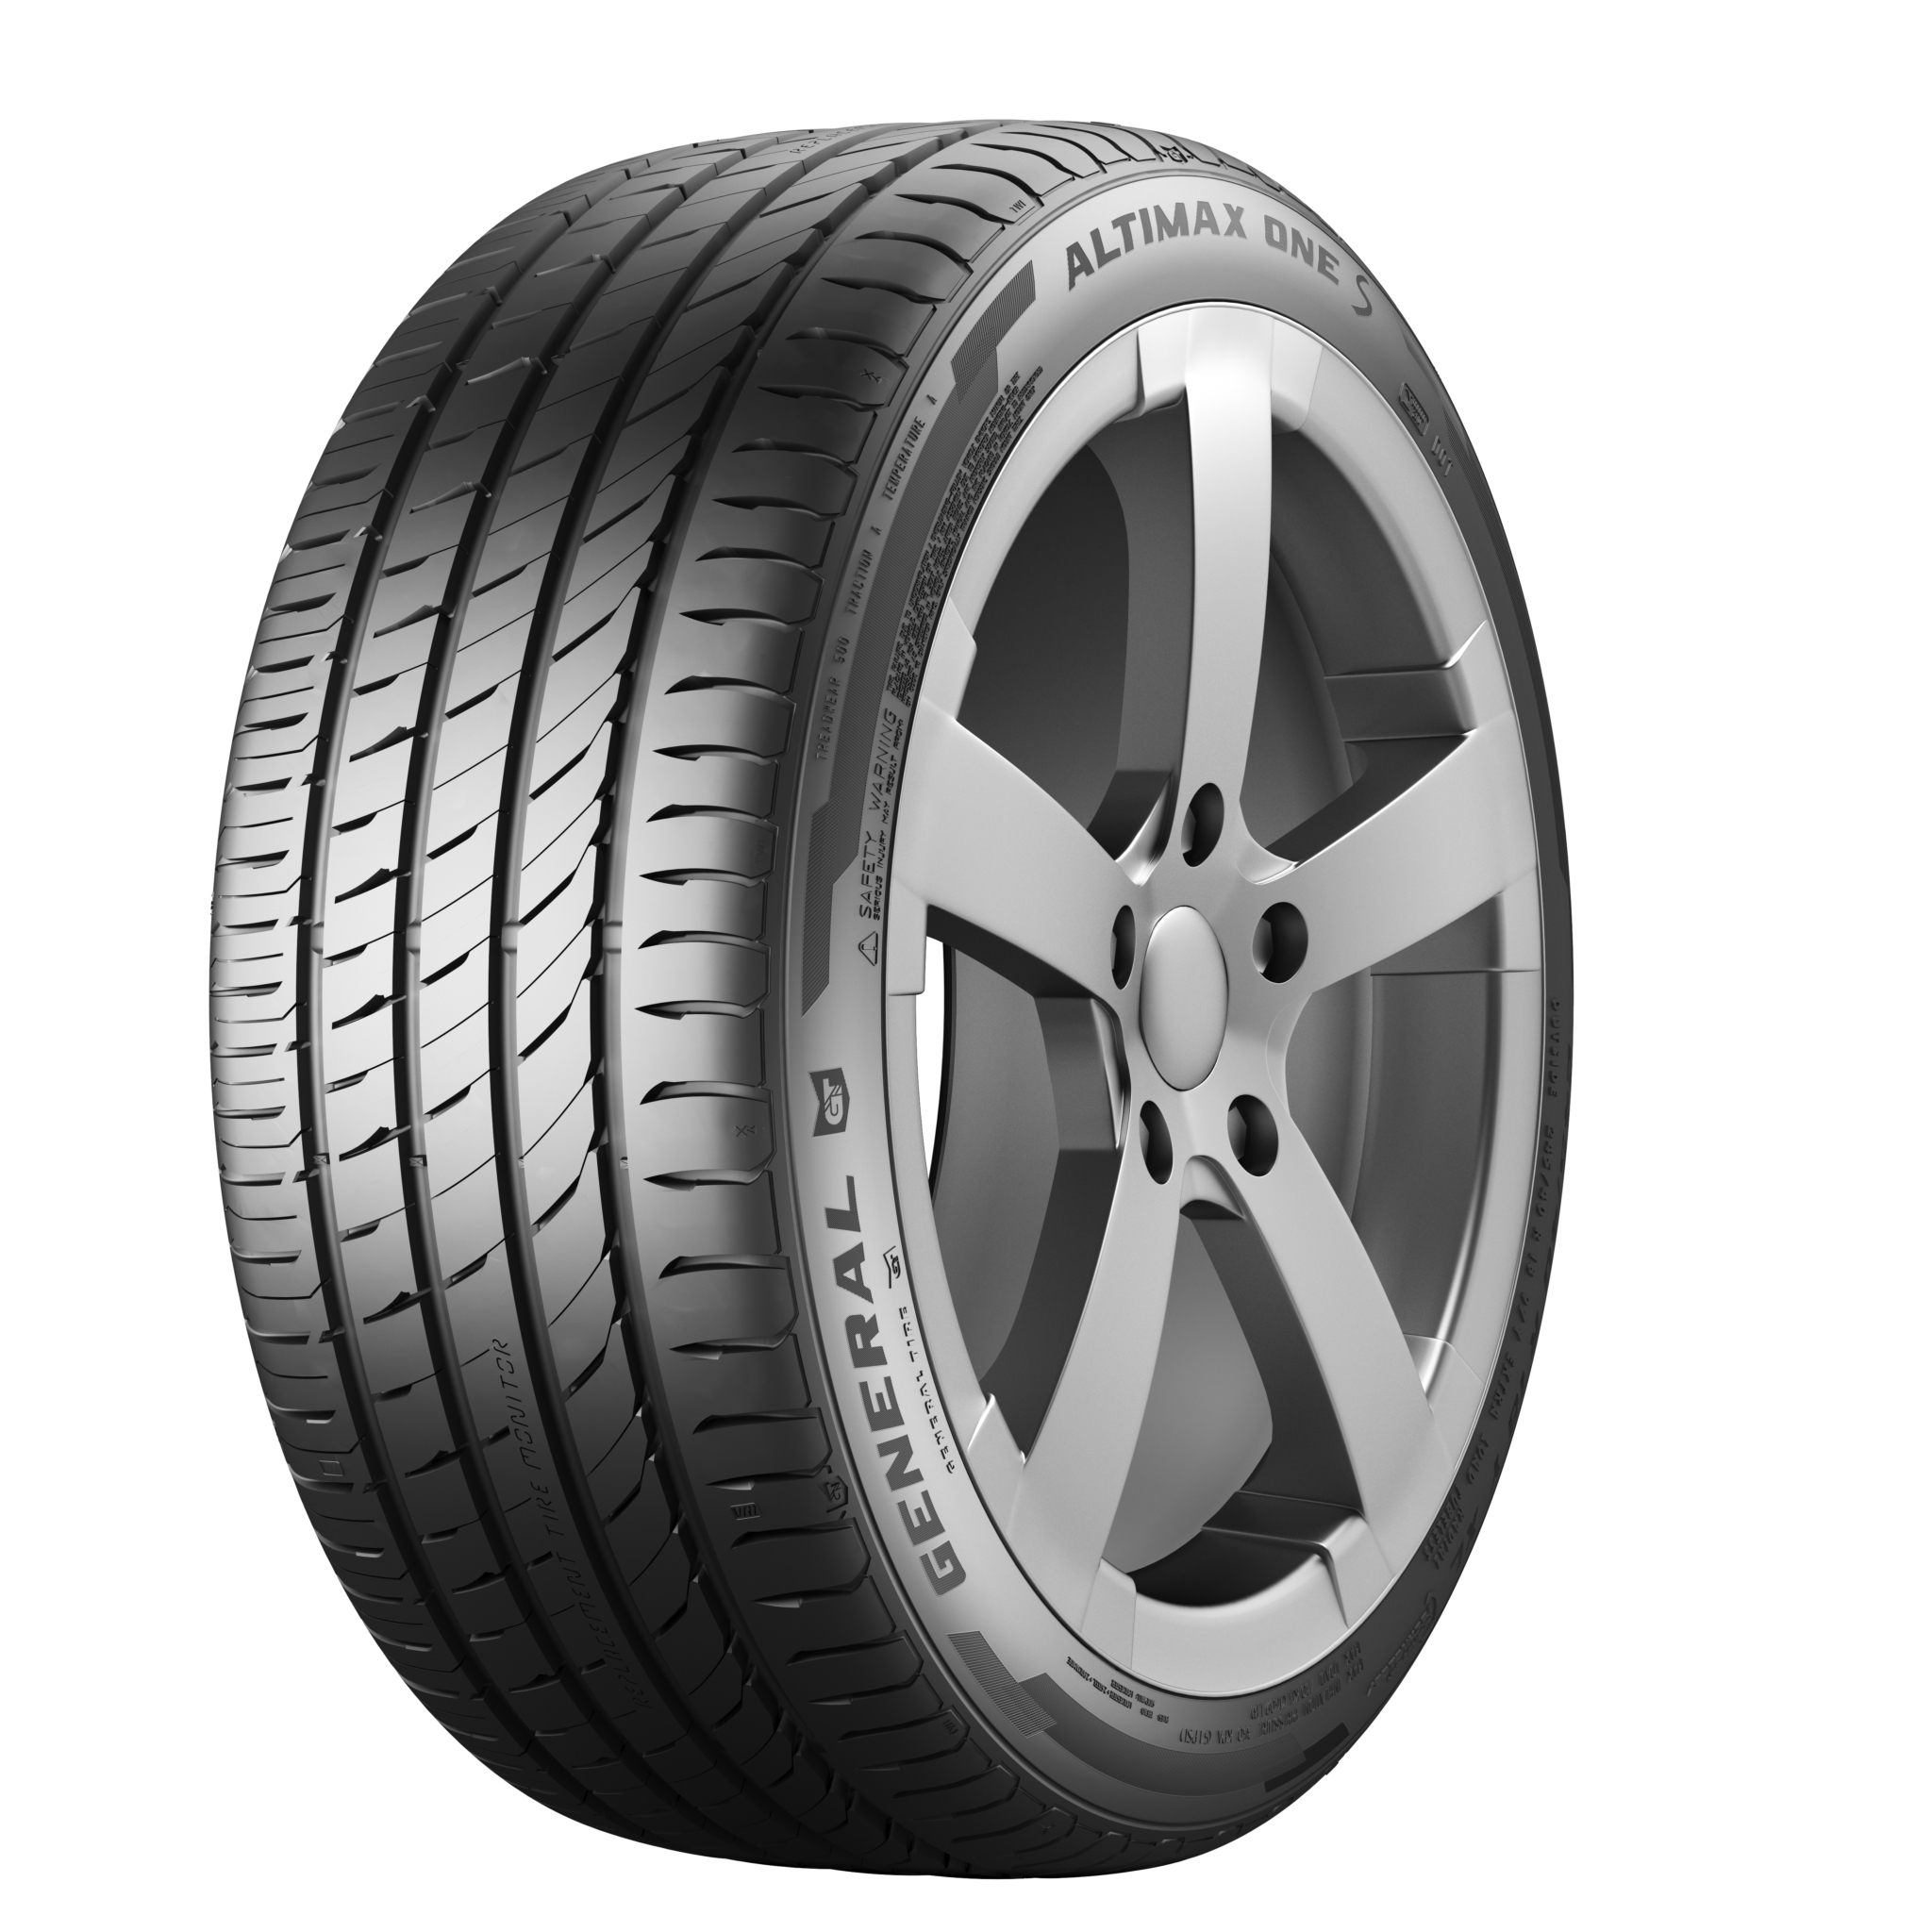 """General Tire Altimax One S available now in 15-20"""" sizes"""